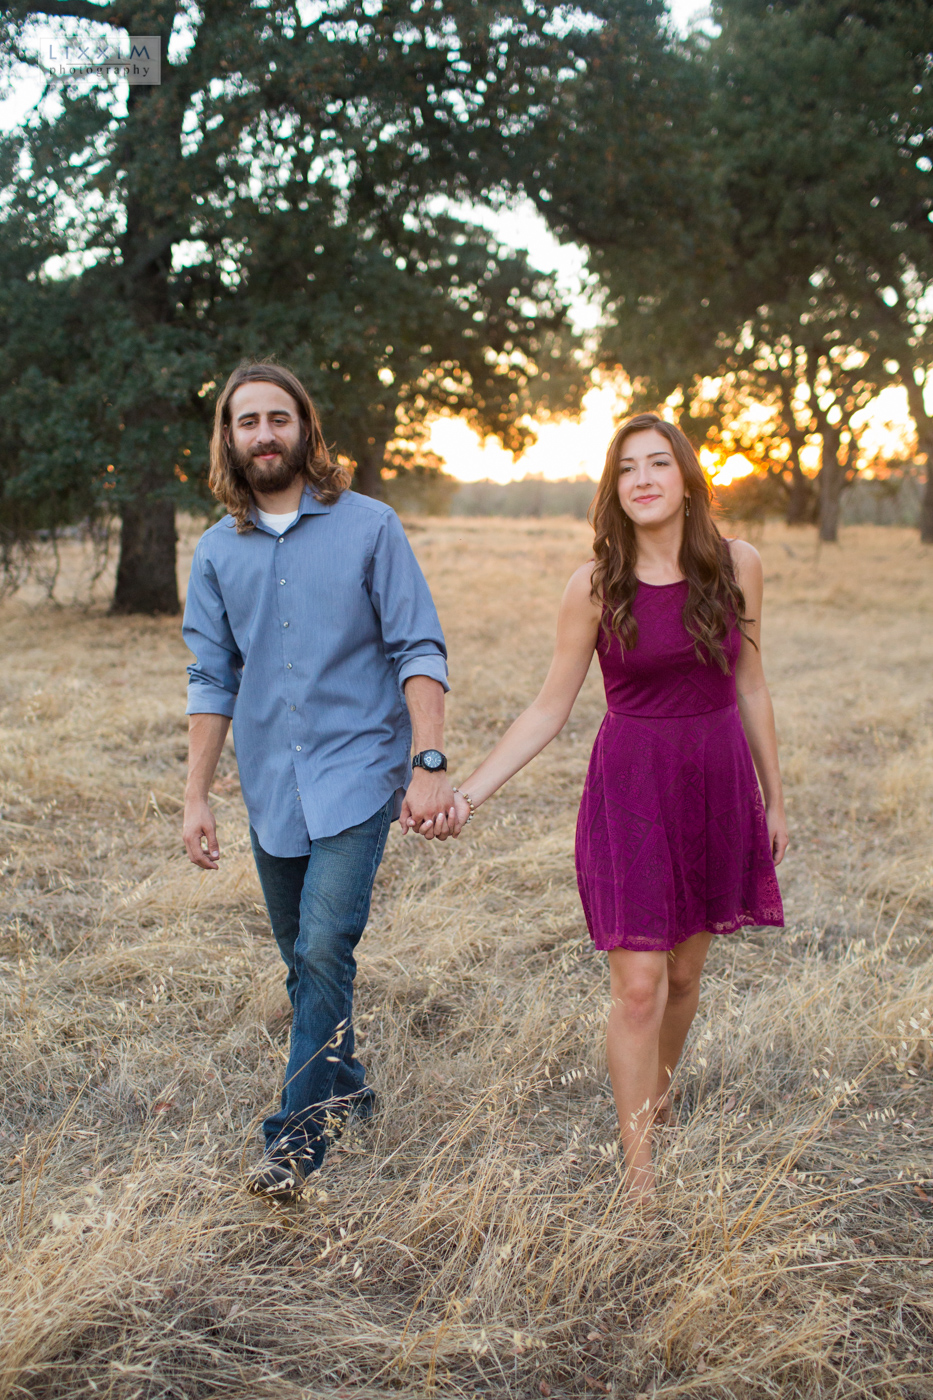 folsom-california-engagement-session-photography-15.jpg